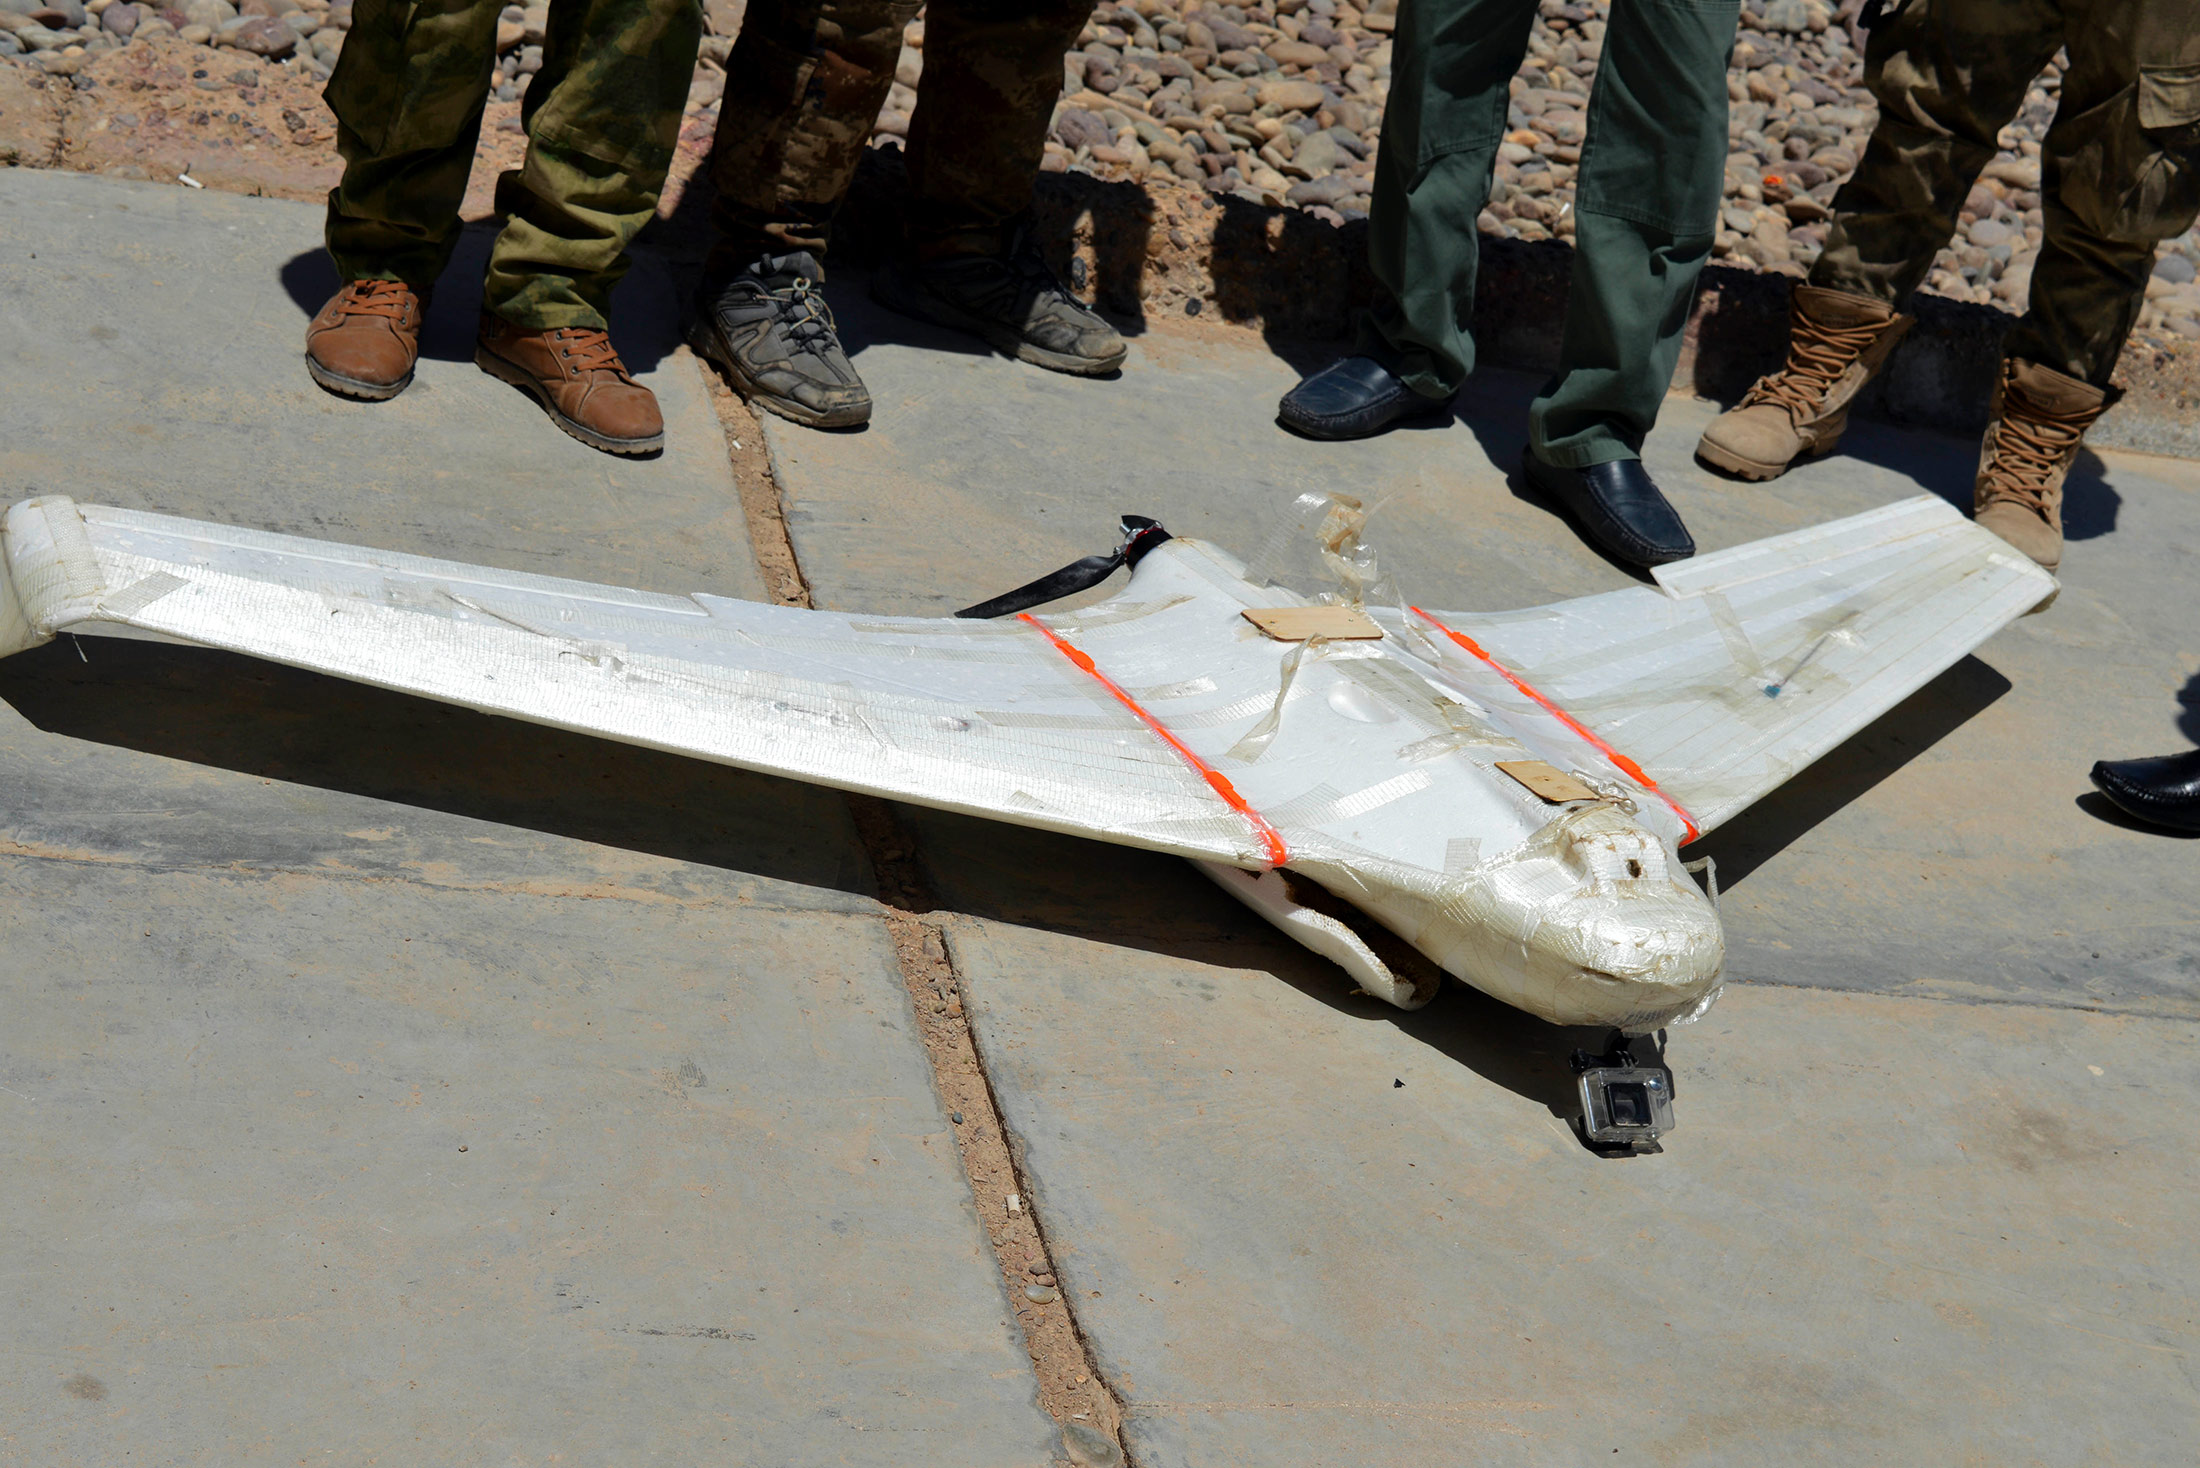 A drone belonging to Islamic State group which was shot down by Iraqi security forces outside Fallujah, Iraq, on May 26, 2016. (AP)